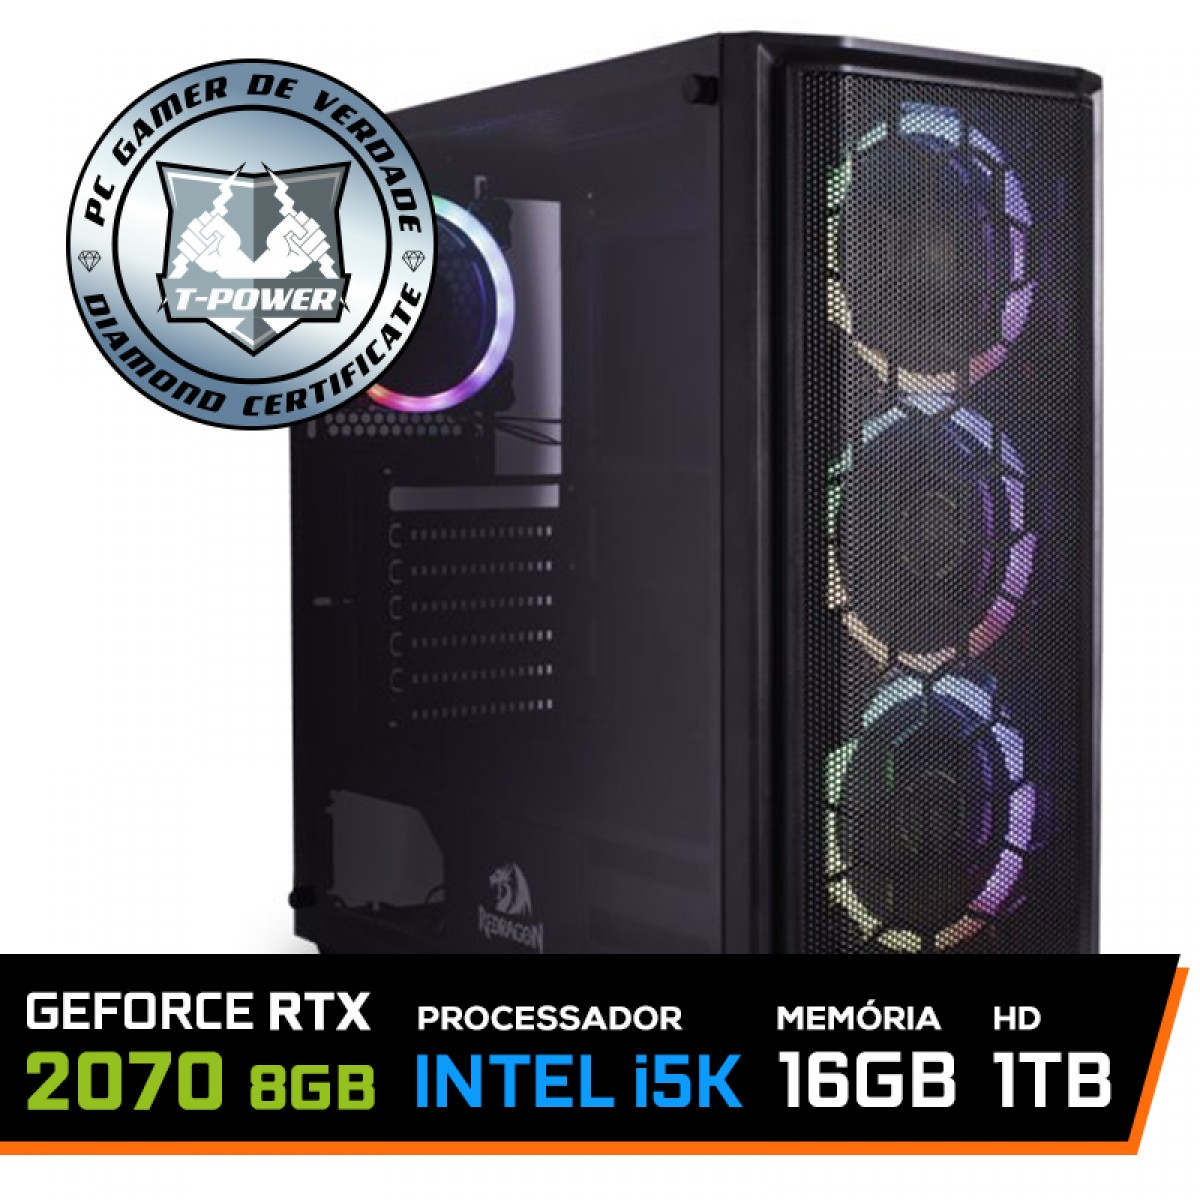 Pc Gamer T-Power Maximus Lvl-2 Intel i5 9600KF / Geforce RTX 2070 8GB / DDR4 16GB / HD 1TB / 600W